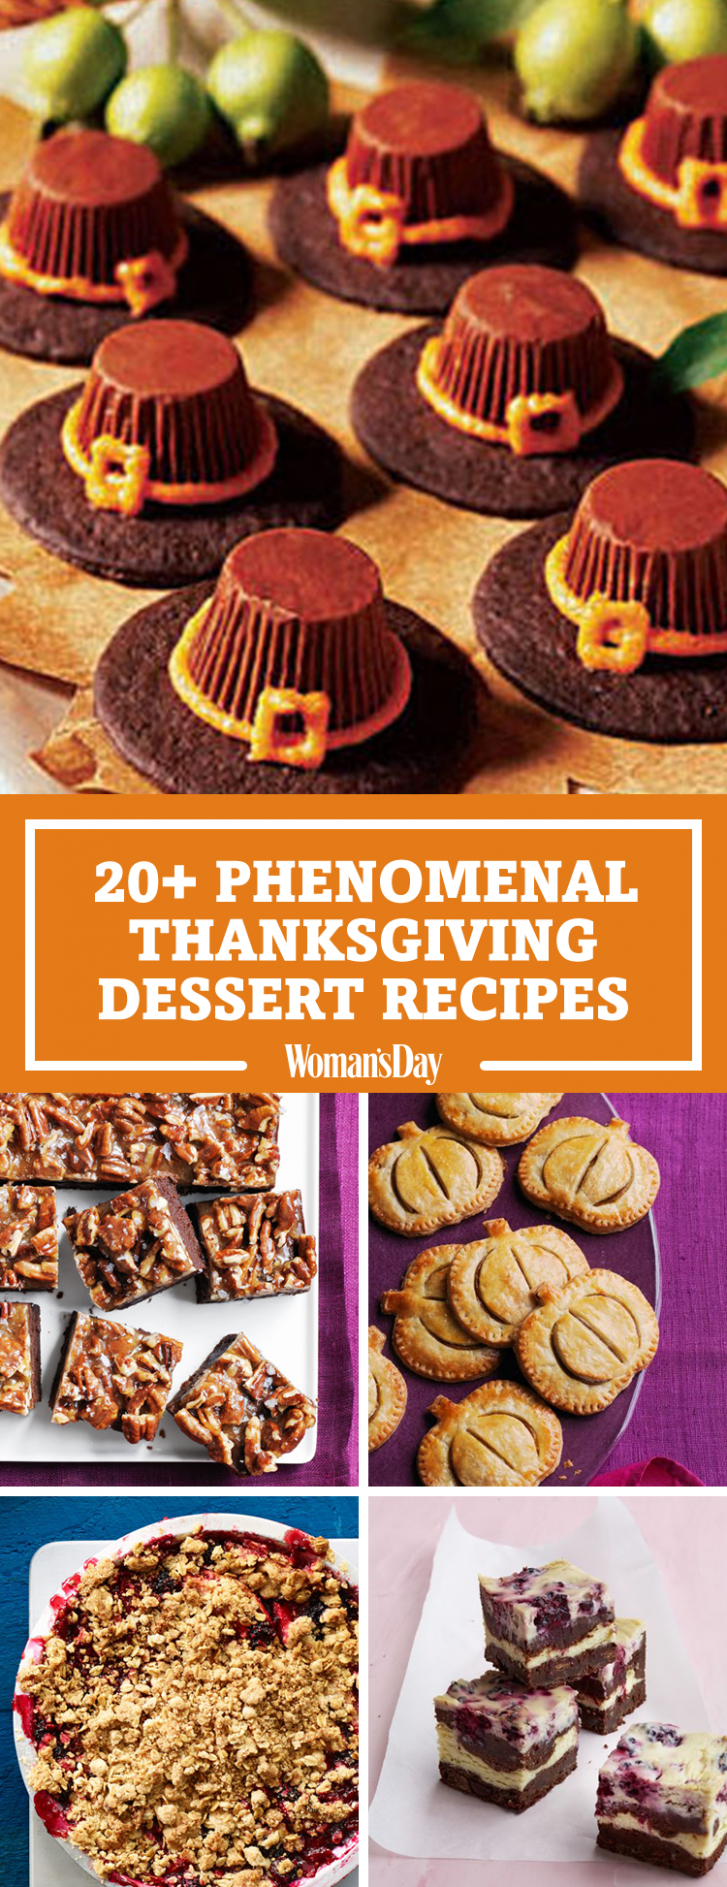 11+ Easy Thanksgiving Desserts - Best Recipes for Thanksgiving Sweets - Dessert Recipes For Thanksgiving